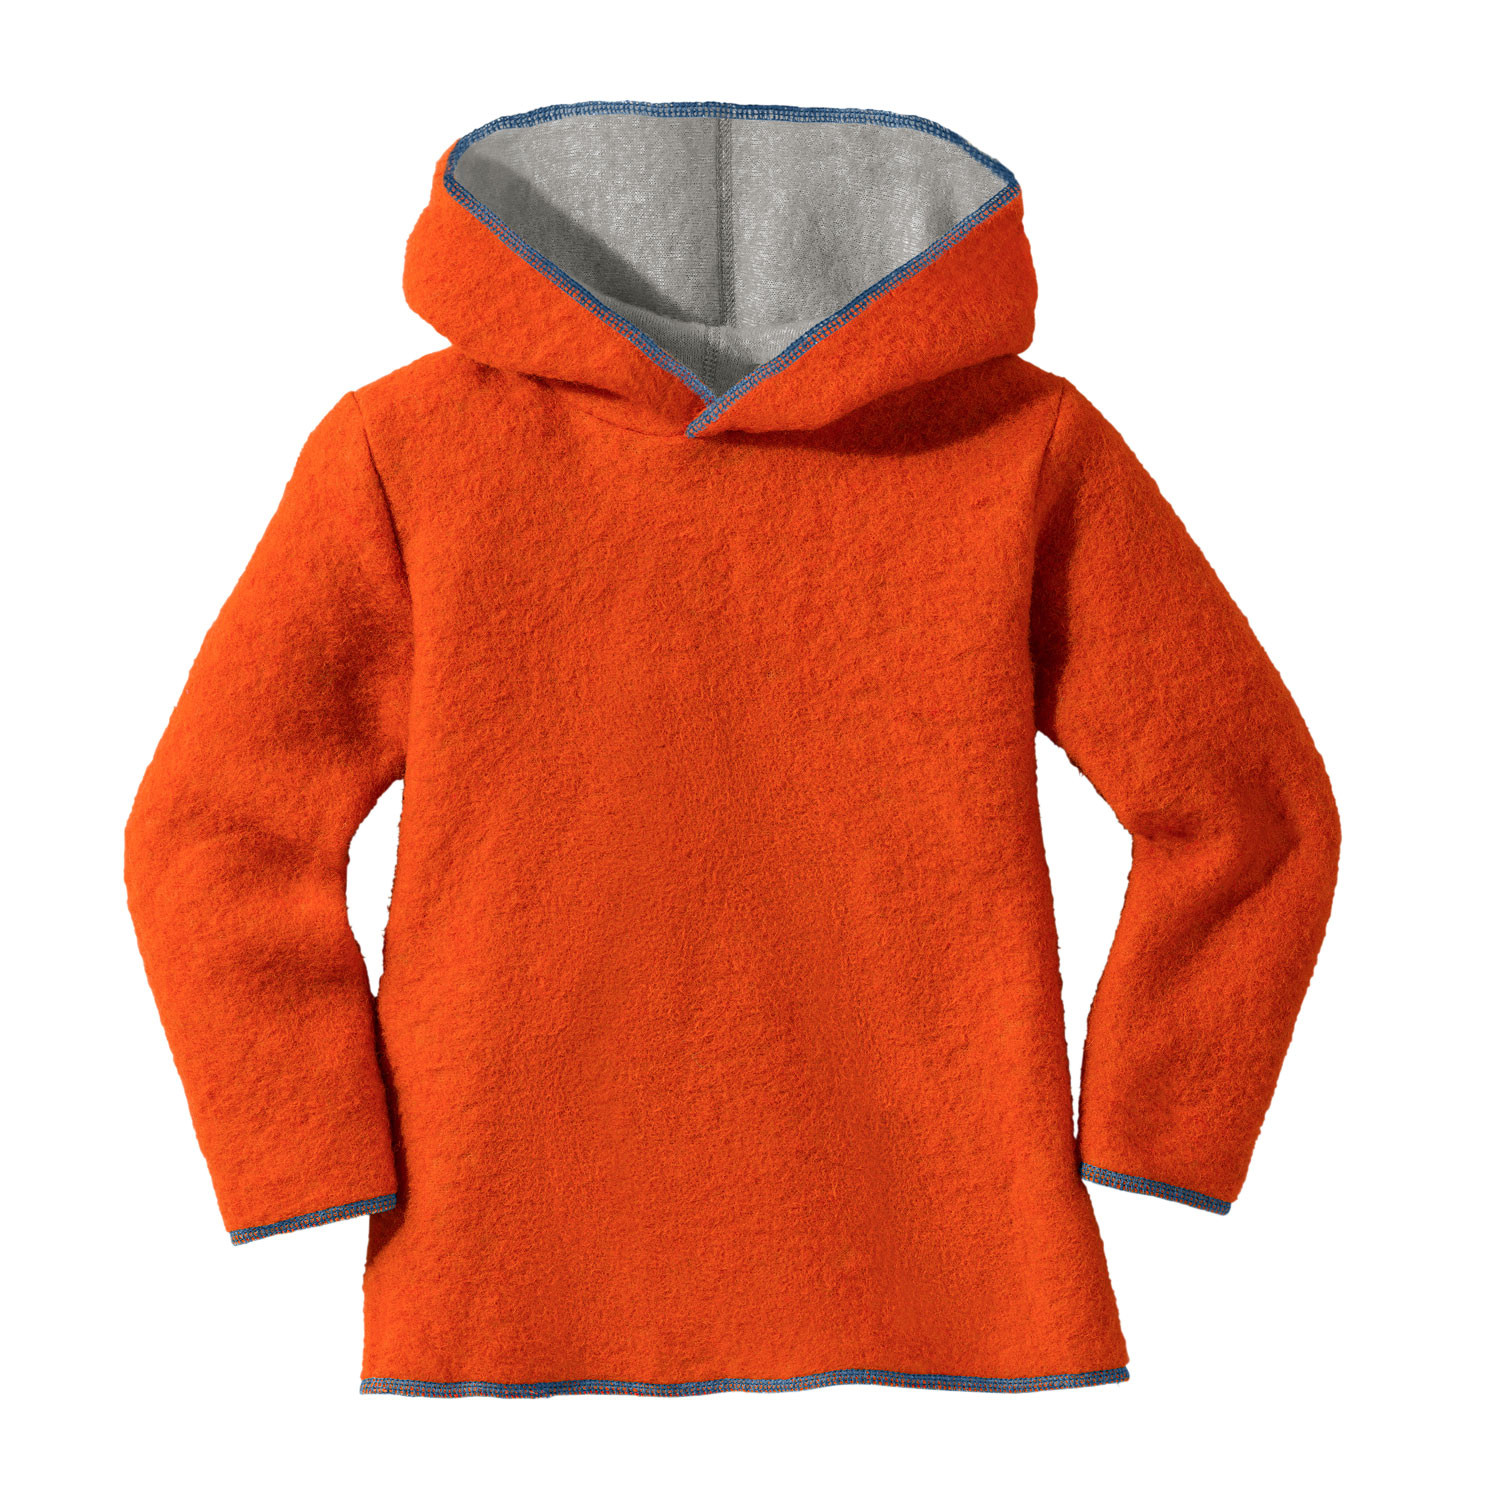 Wollwalk-Kapuzenpullover, orange